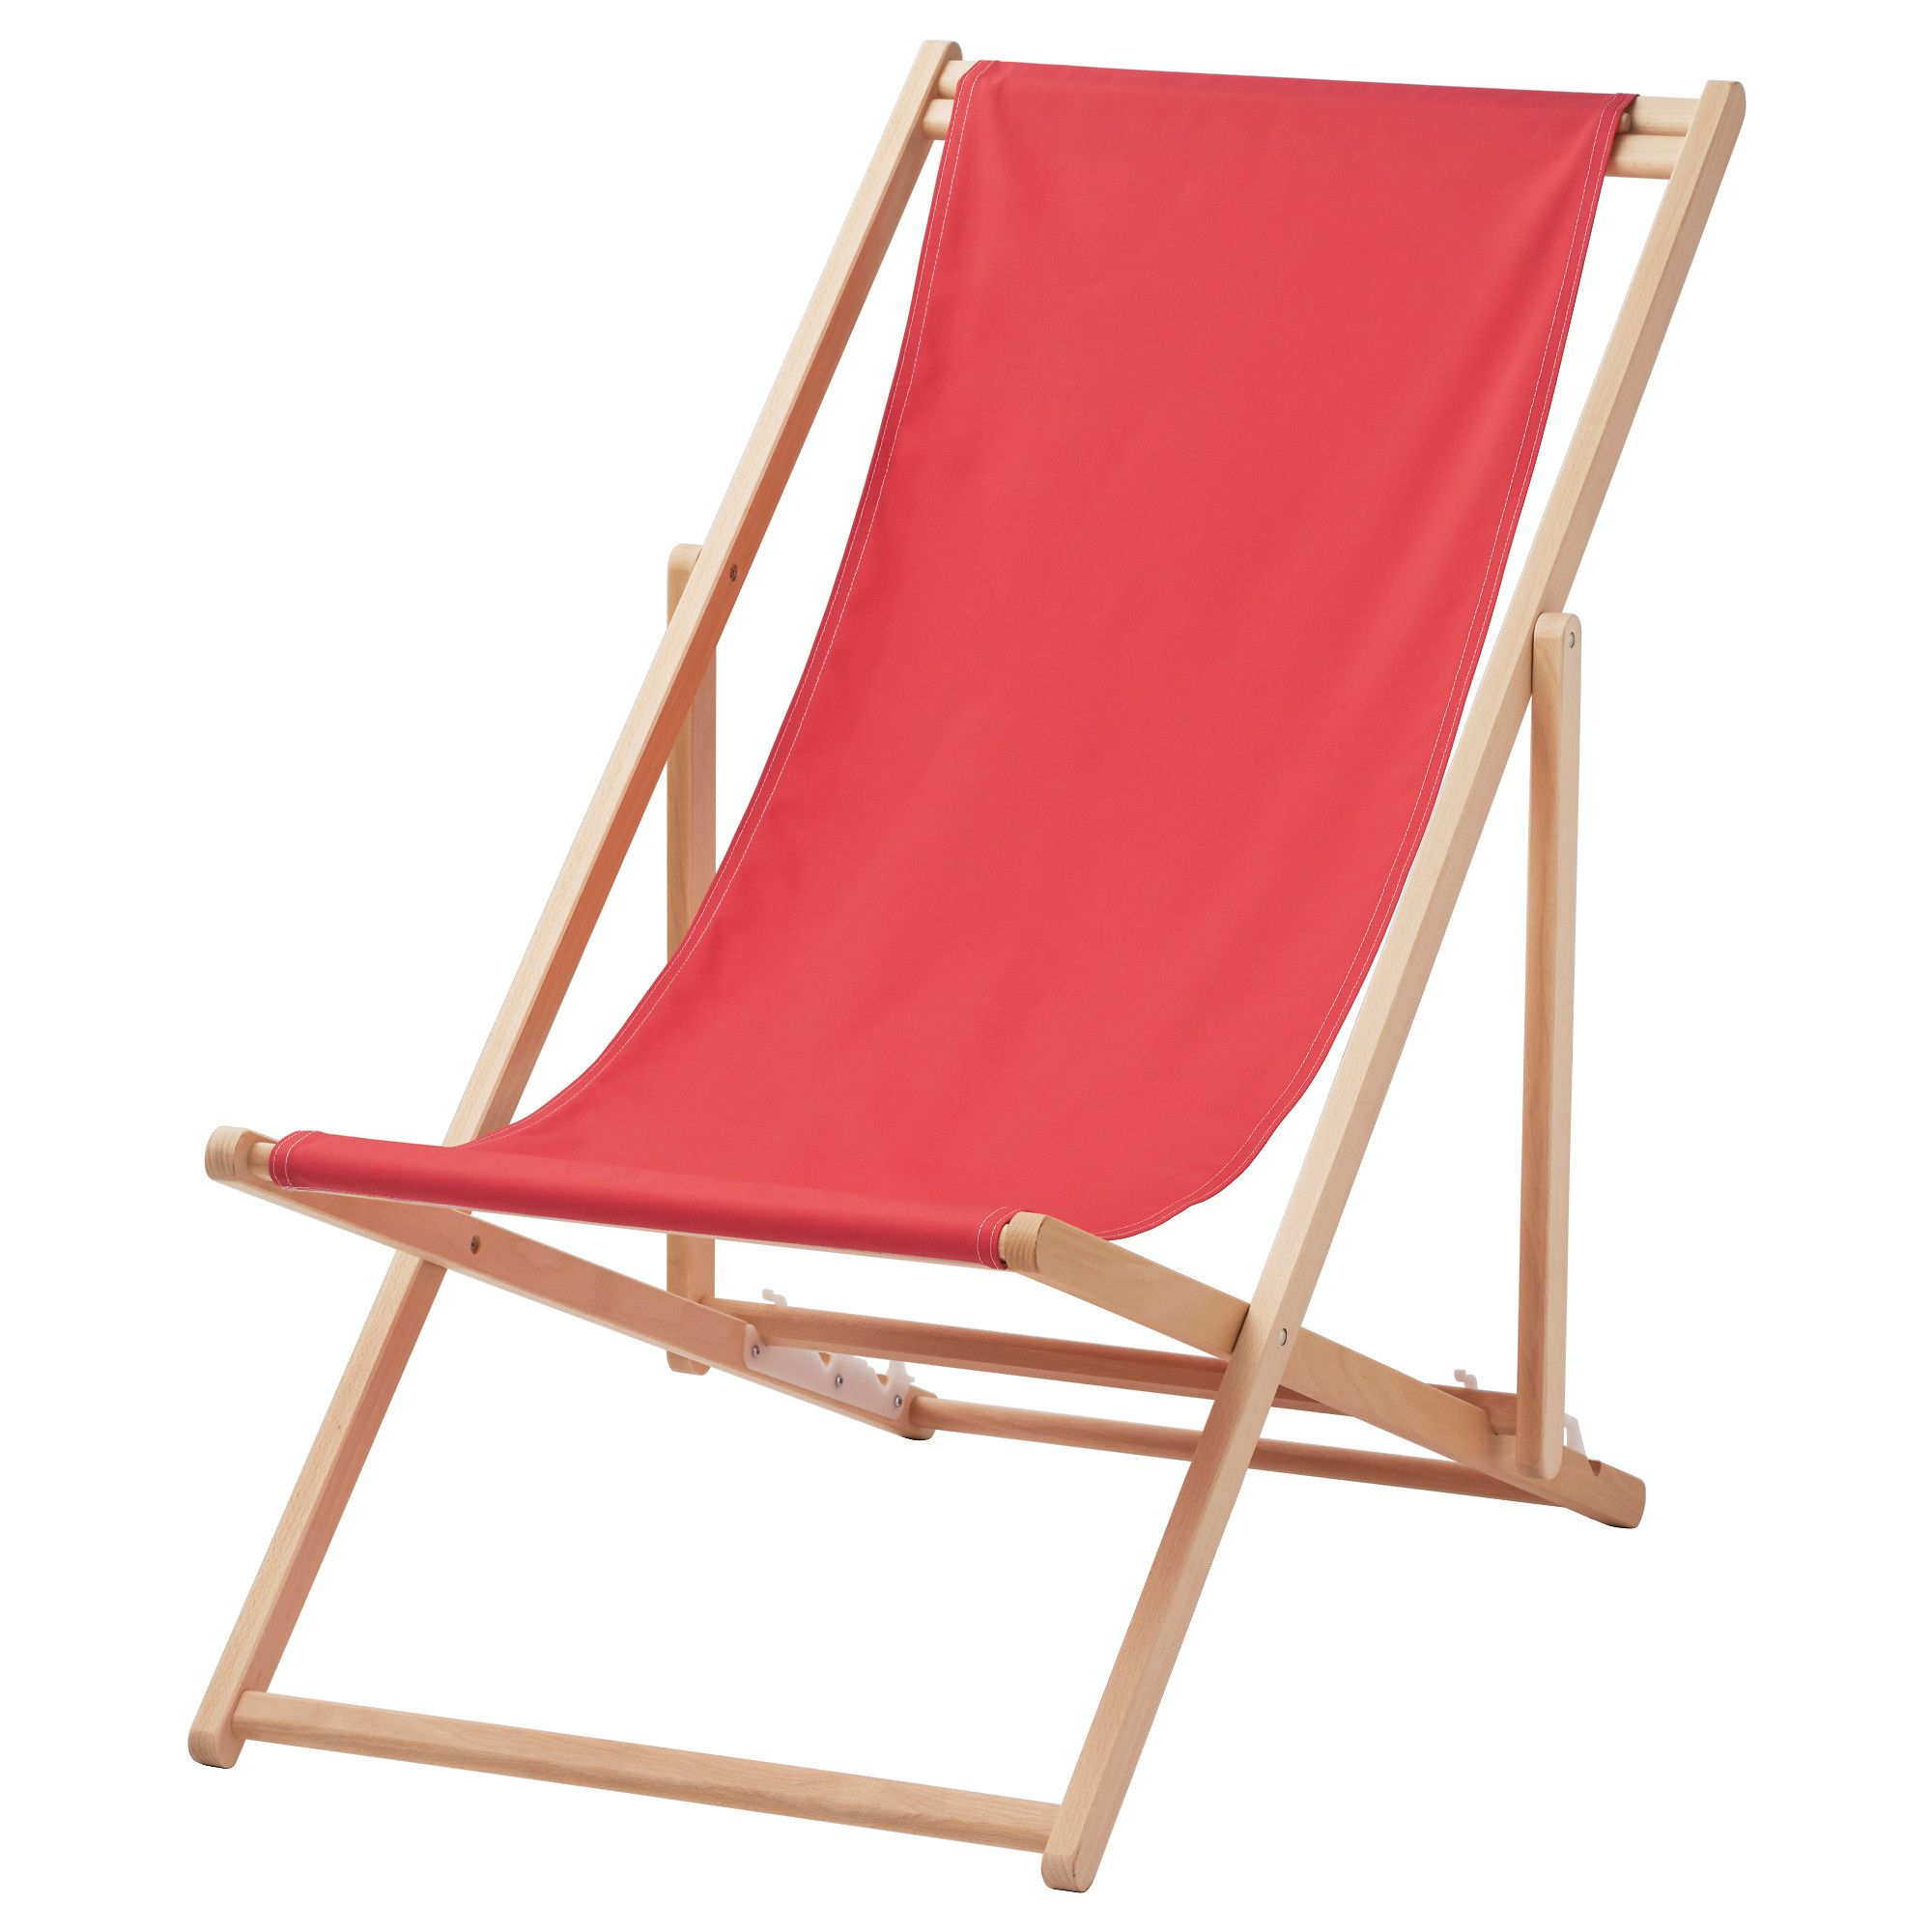 The Best Way to Clean Outdoor Lounge Chairs With White Straps